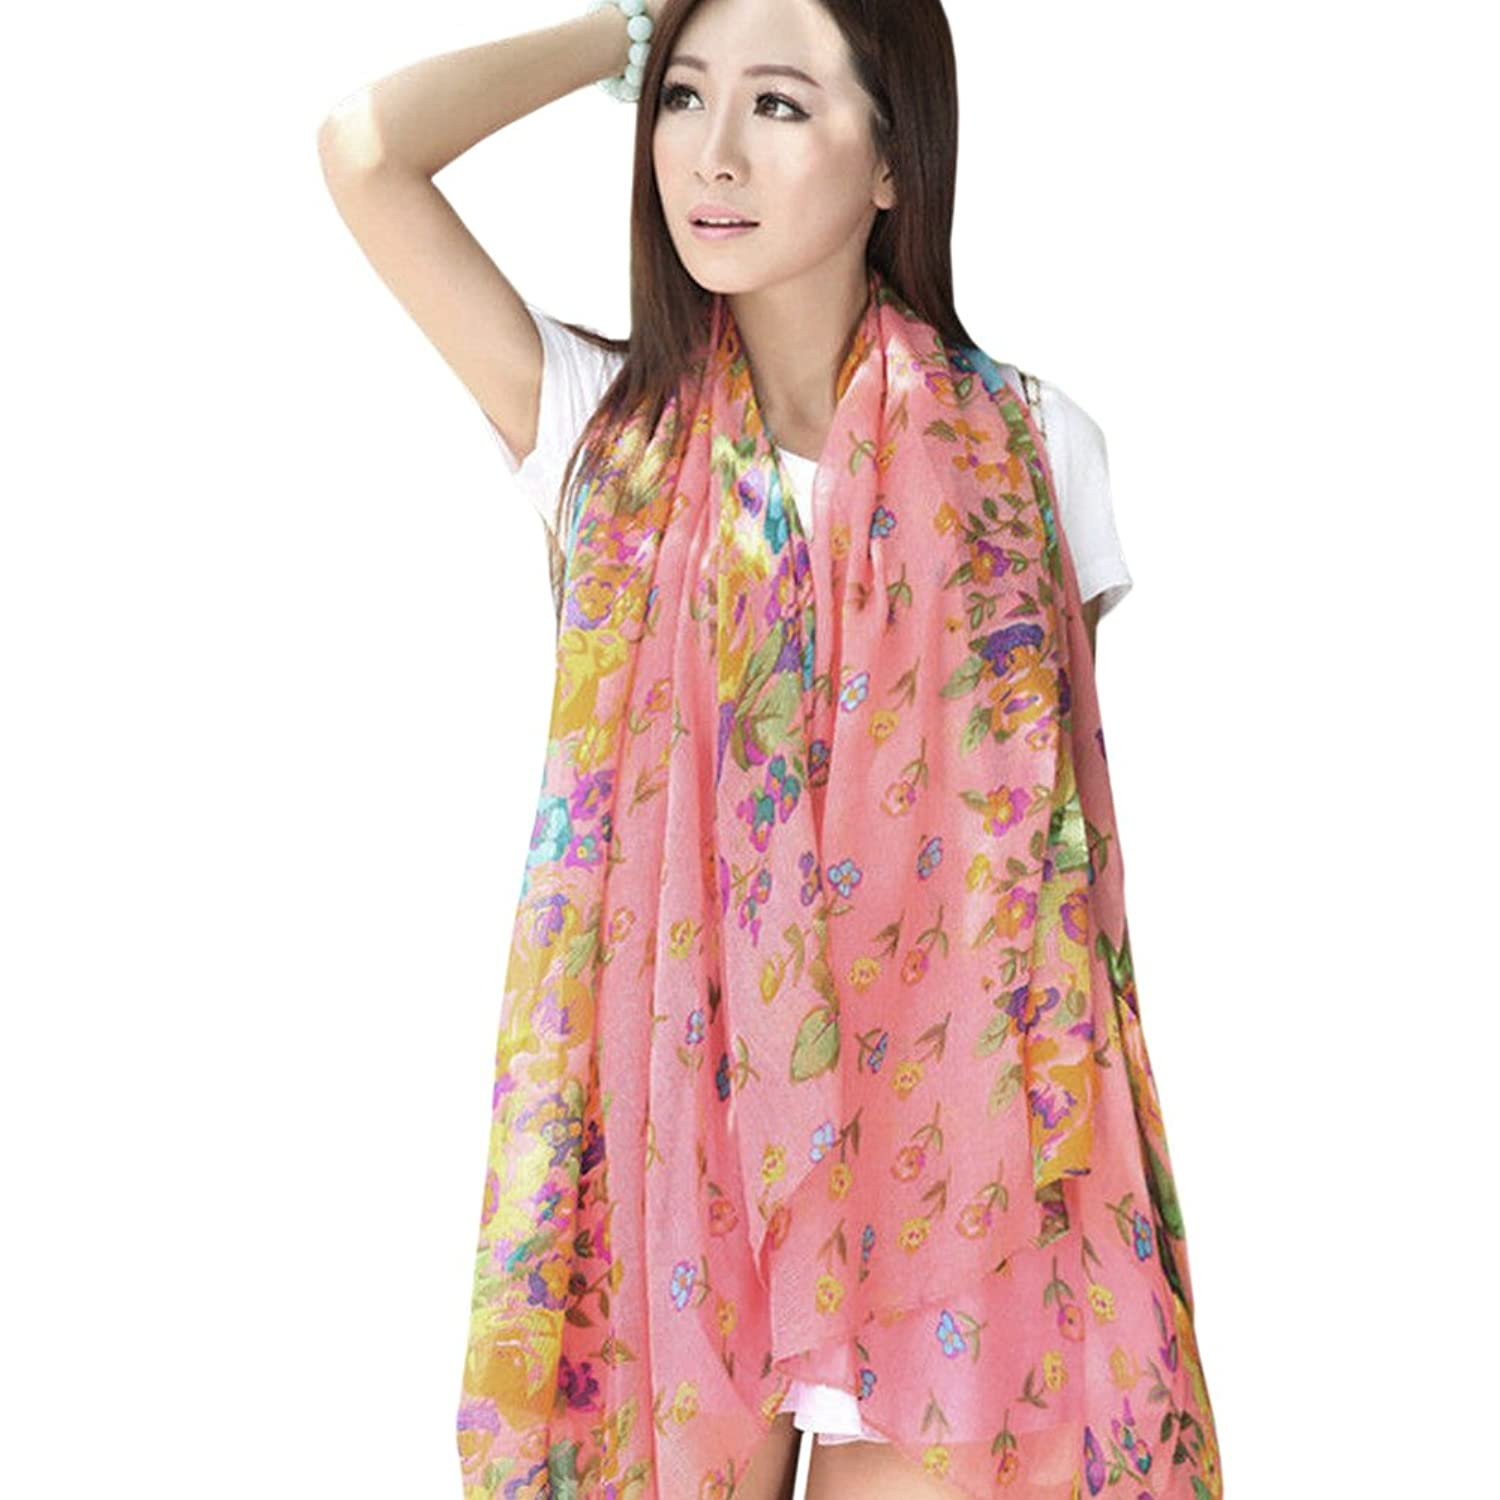 Fashionable woman lady girl shawls scarf print flowers cotton scarf